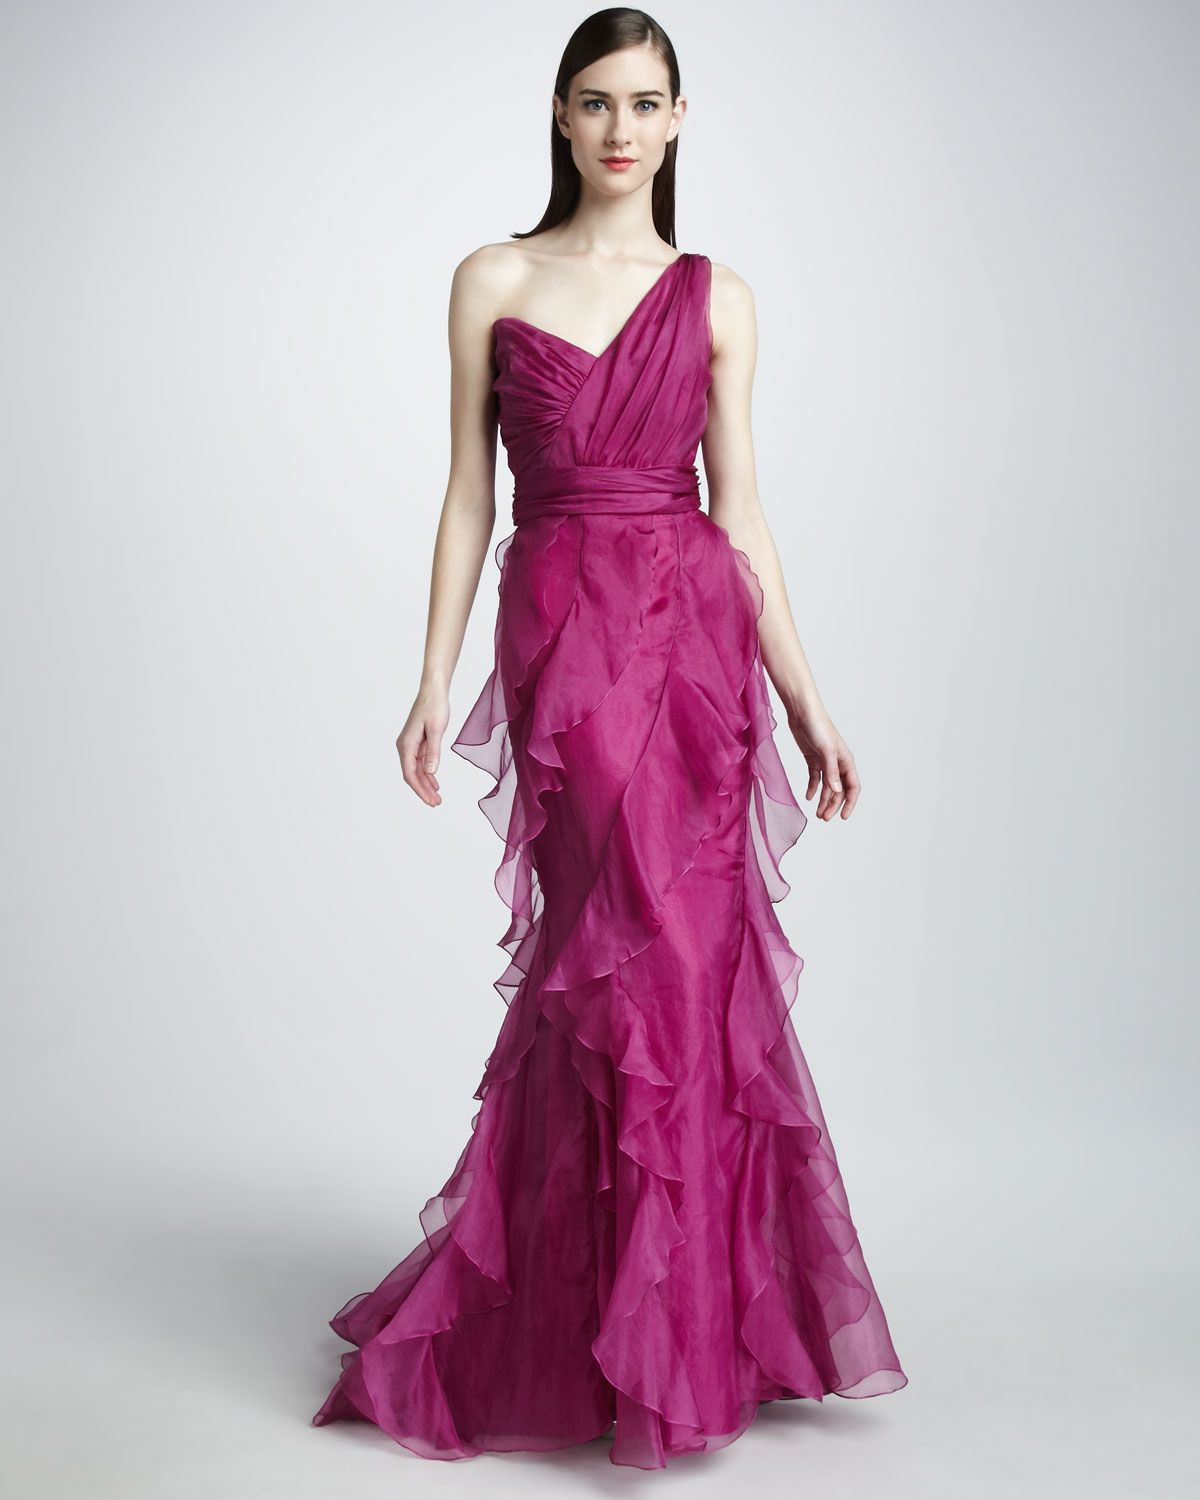 Badgley Mischka: Ruffled One-Shoulder Gown - Neiman Marcus | The ...